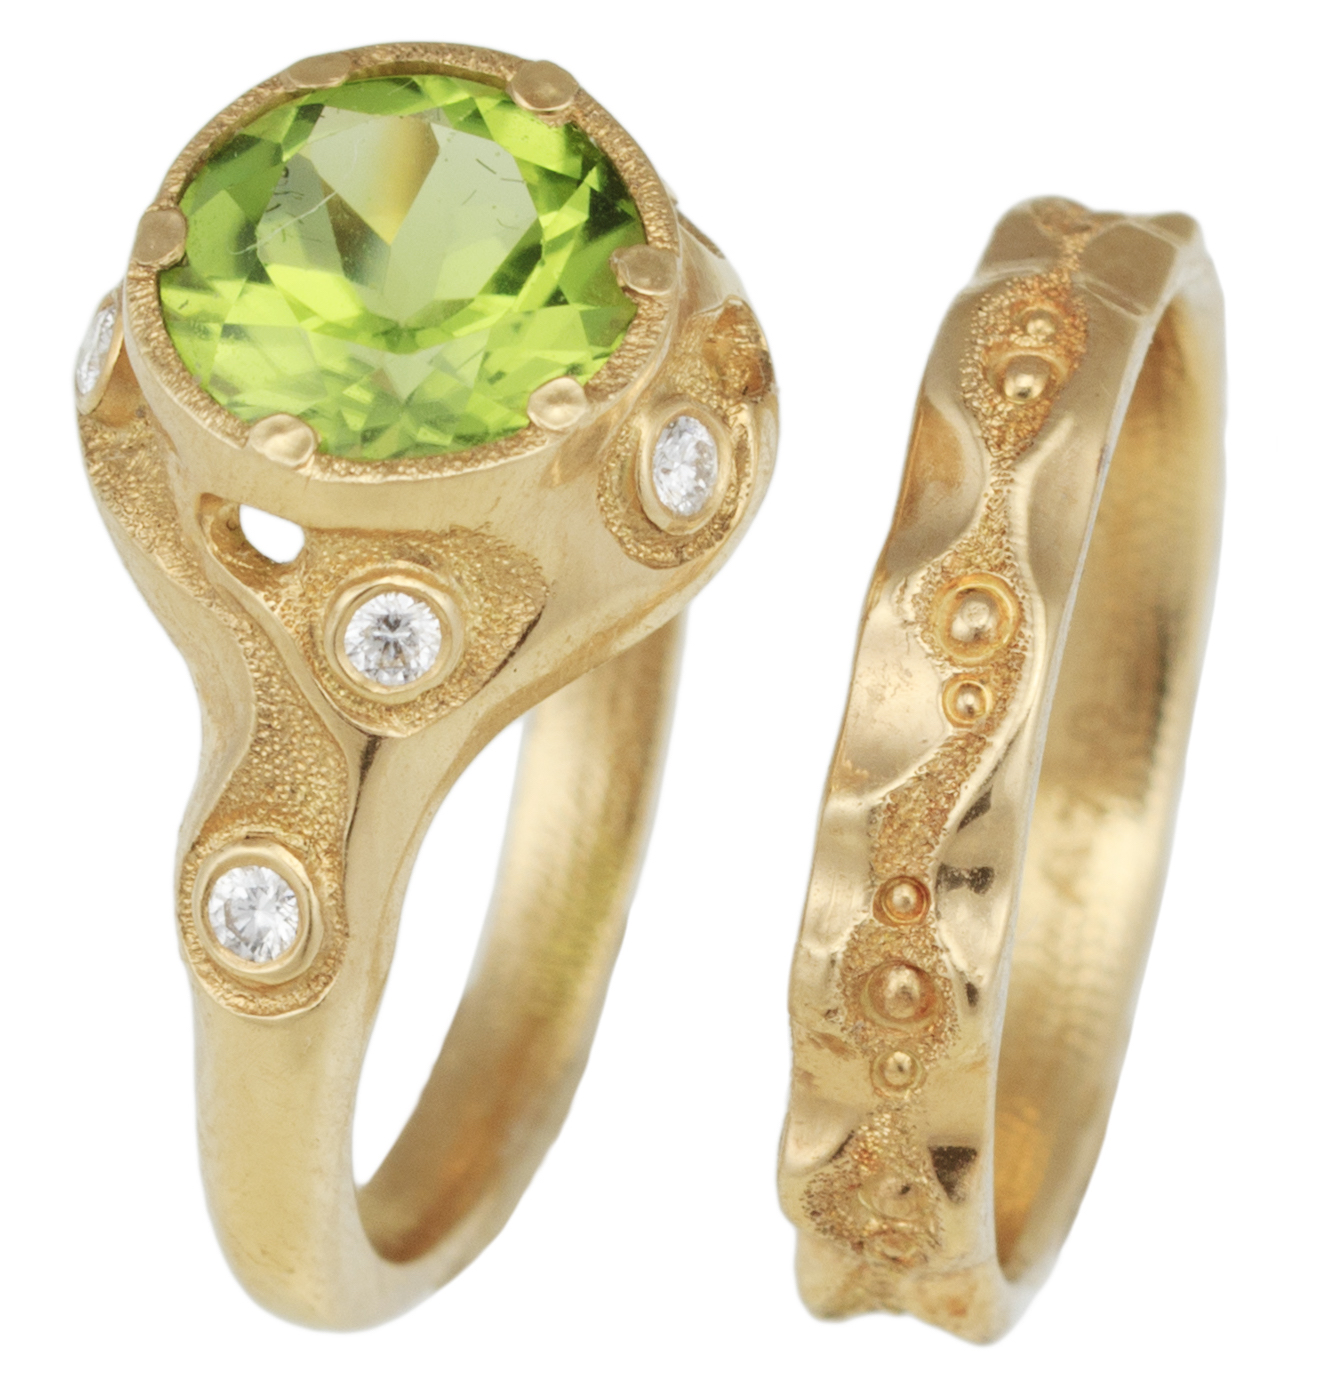 Audrius Krulis Swirling Brook engagement set | JCK On Your Market